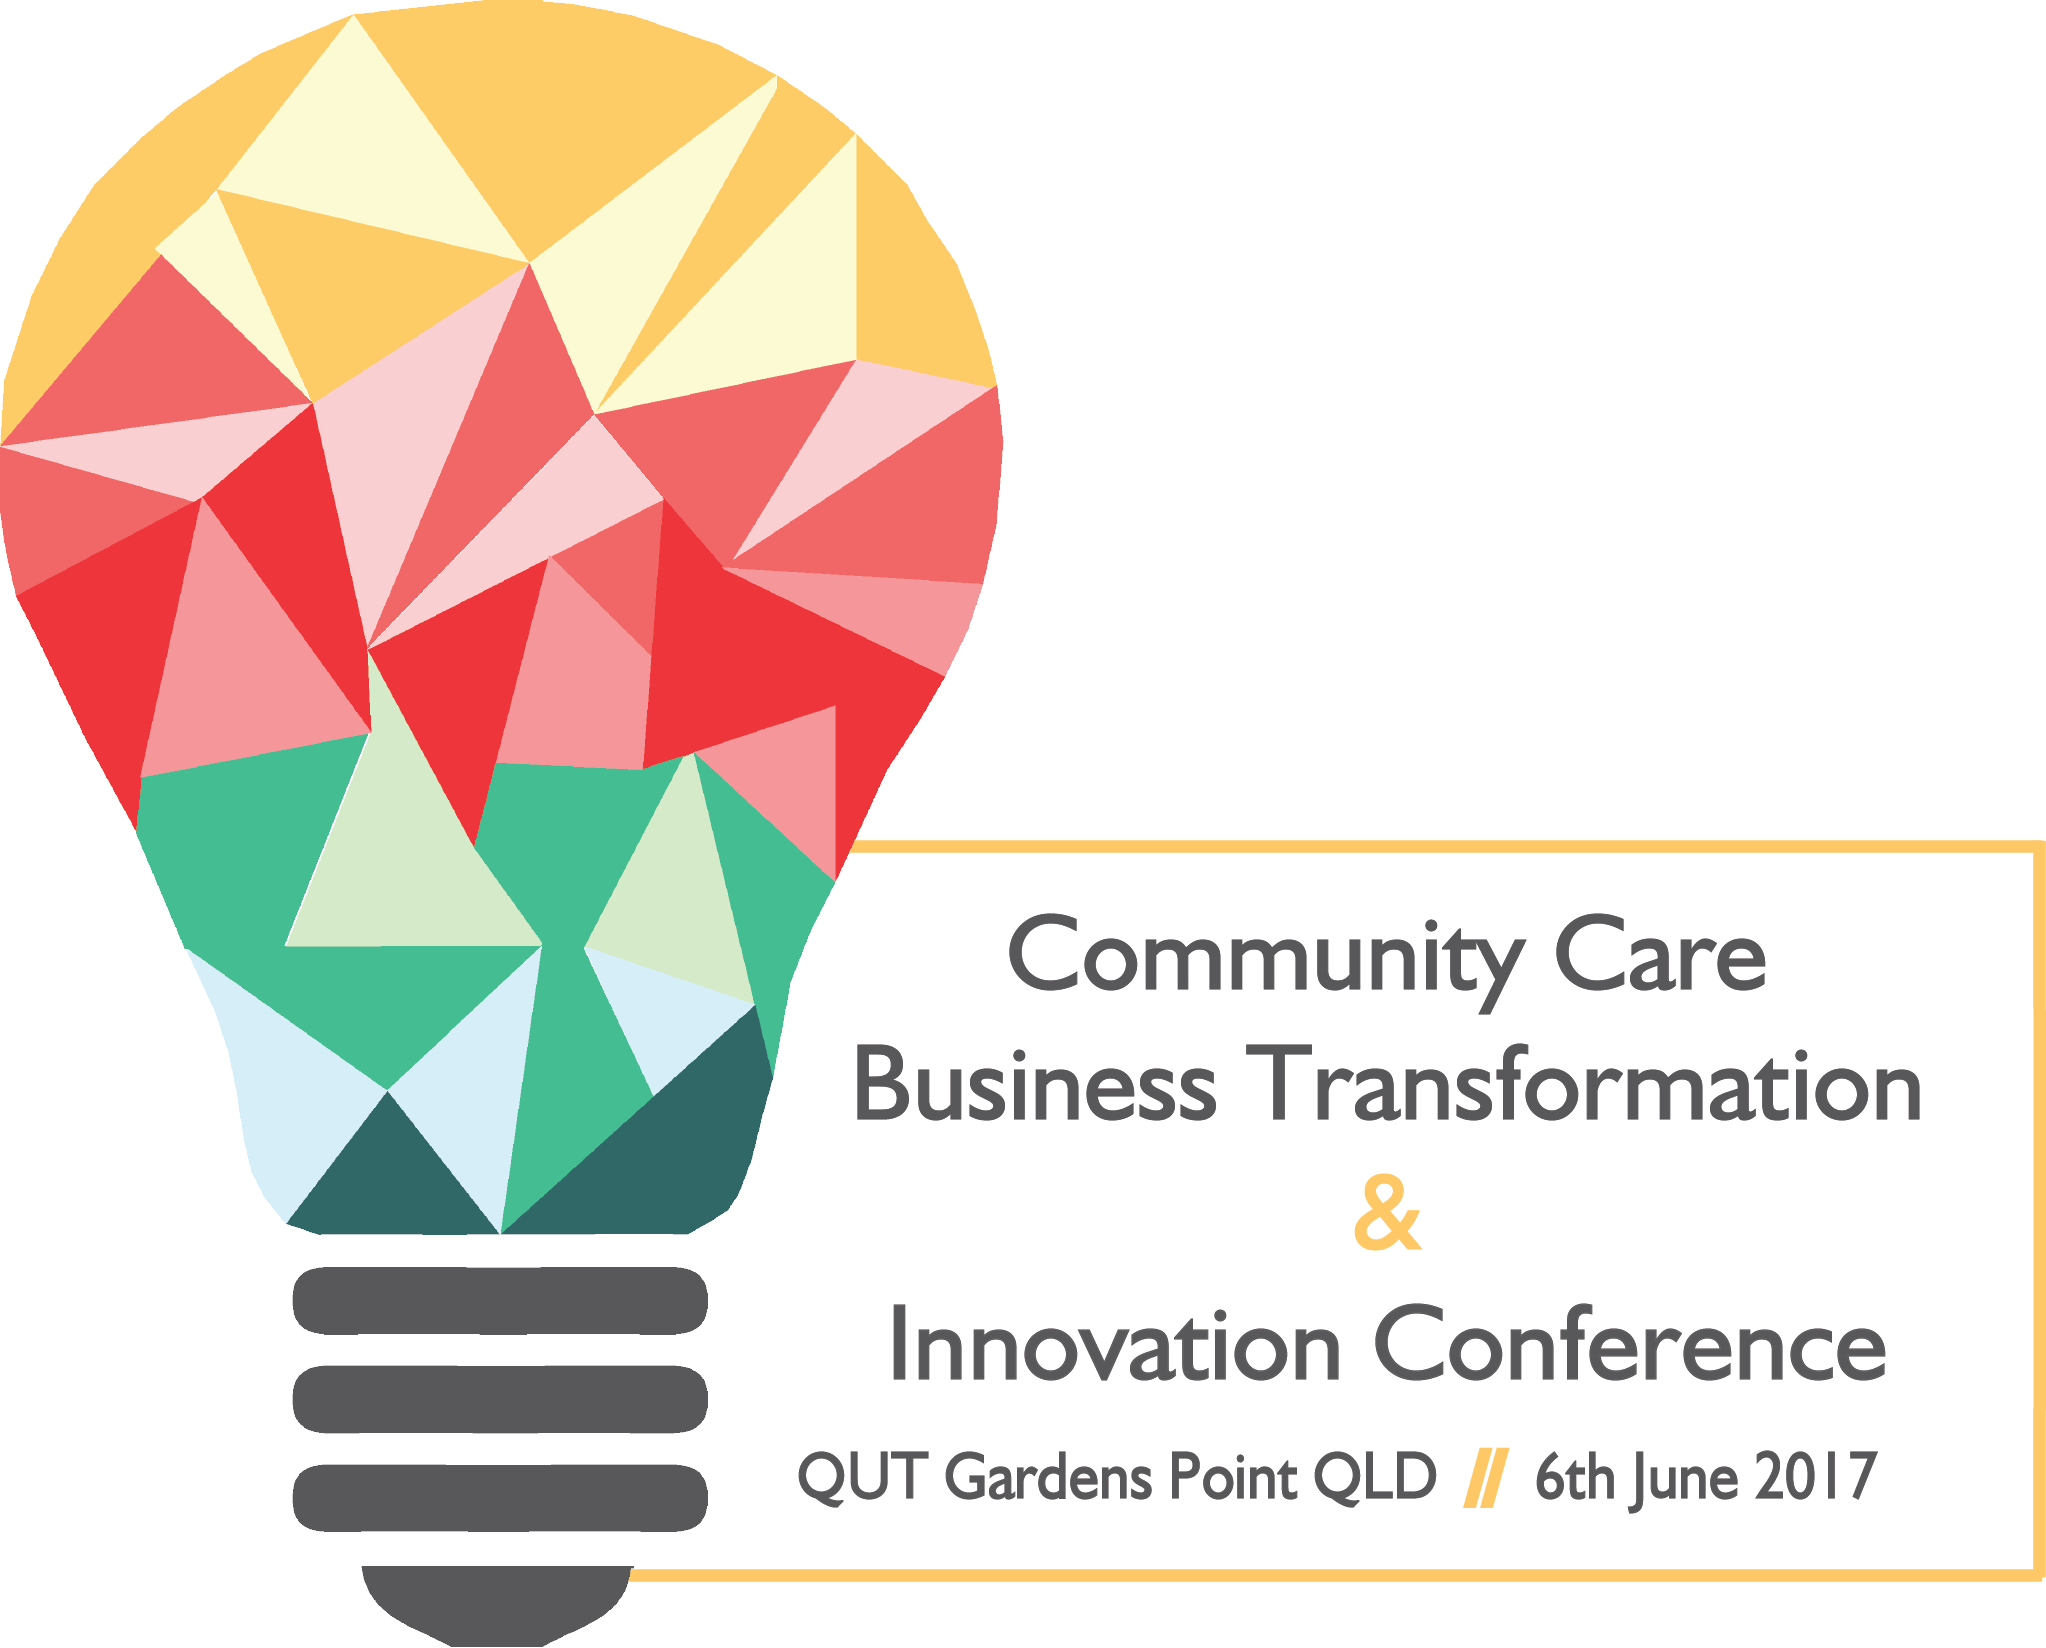 Technology clipart innovation technology. Community care business transformation